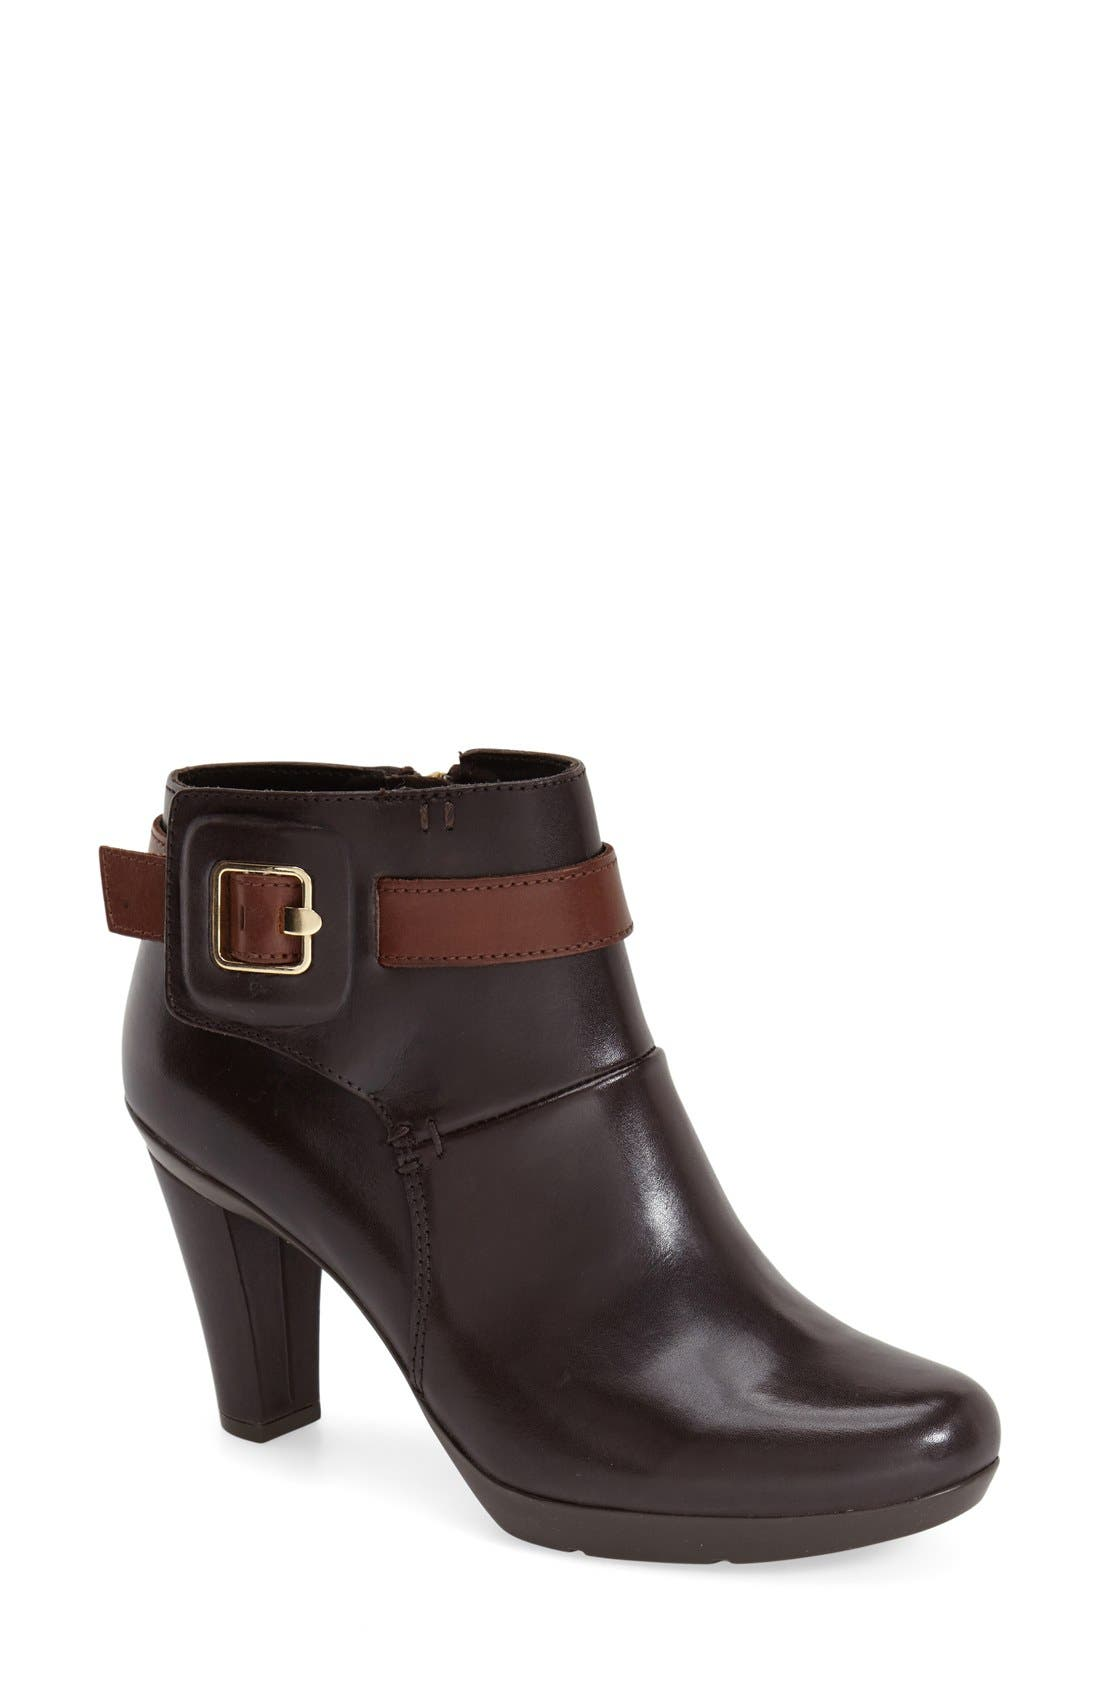 'Inspiration' Bootie,                             Main thumbnail 1, color,                             Dark Brown Smooth Leather